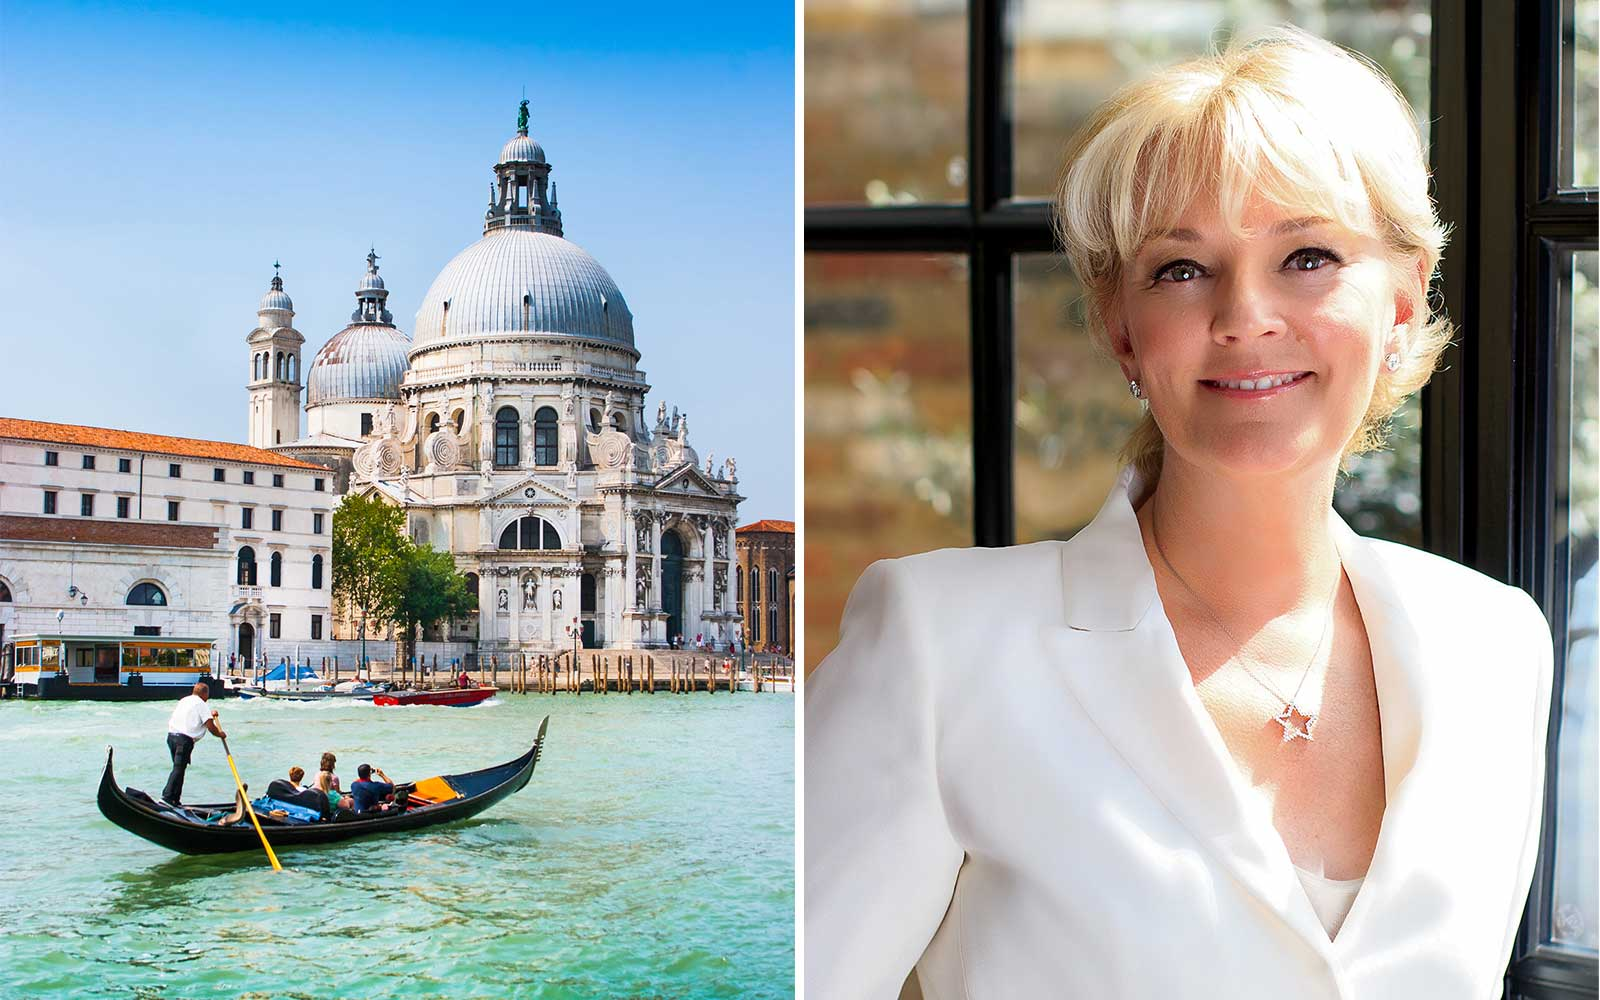 Perfumer Jo Malone Shares Her Family-friendly Venice Itinerary — and Her Best Tips for Finding Cheap Eats